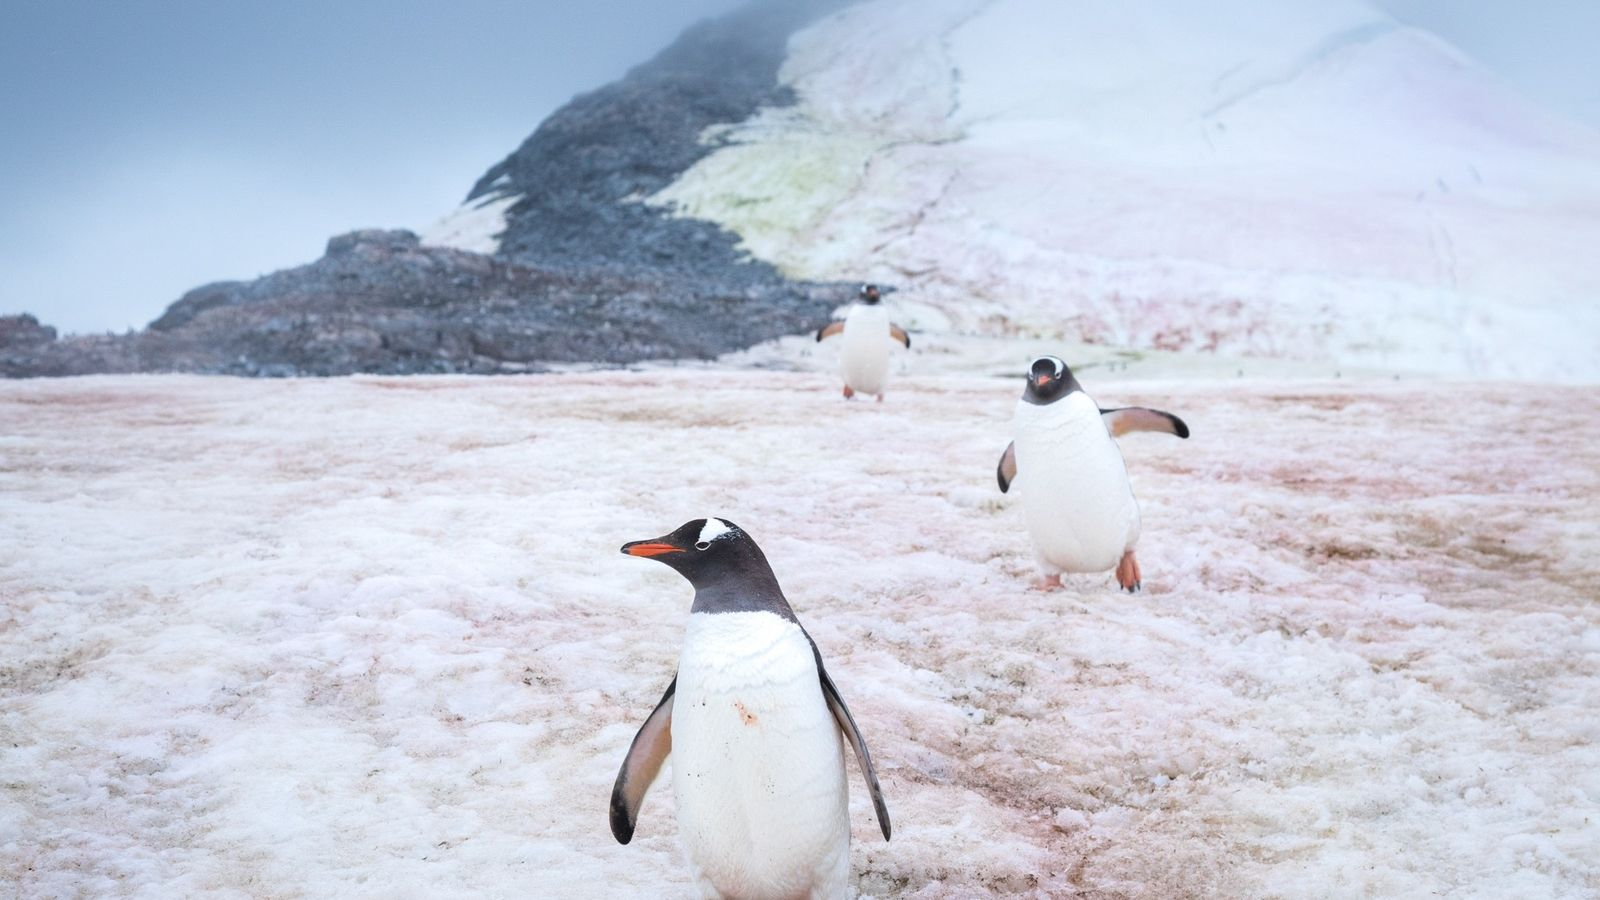 Gentoo penguins make their way to and from their nests at Port Charcot, Antarctica.